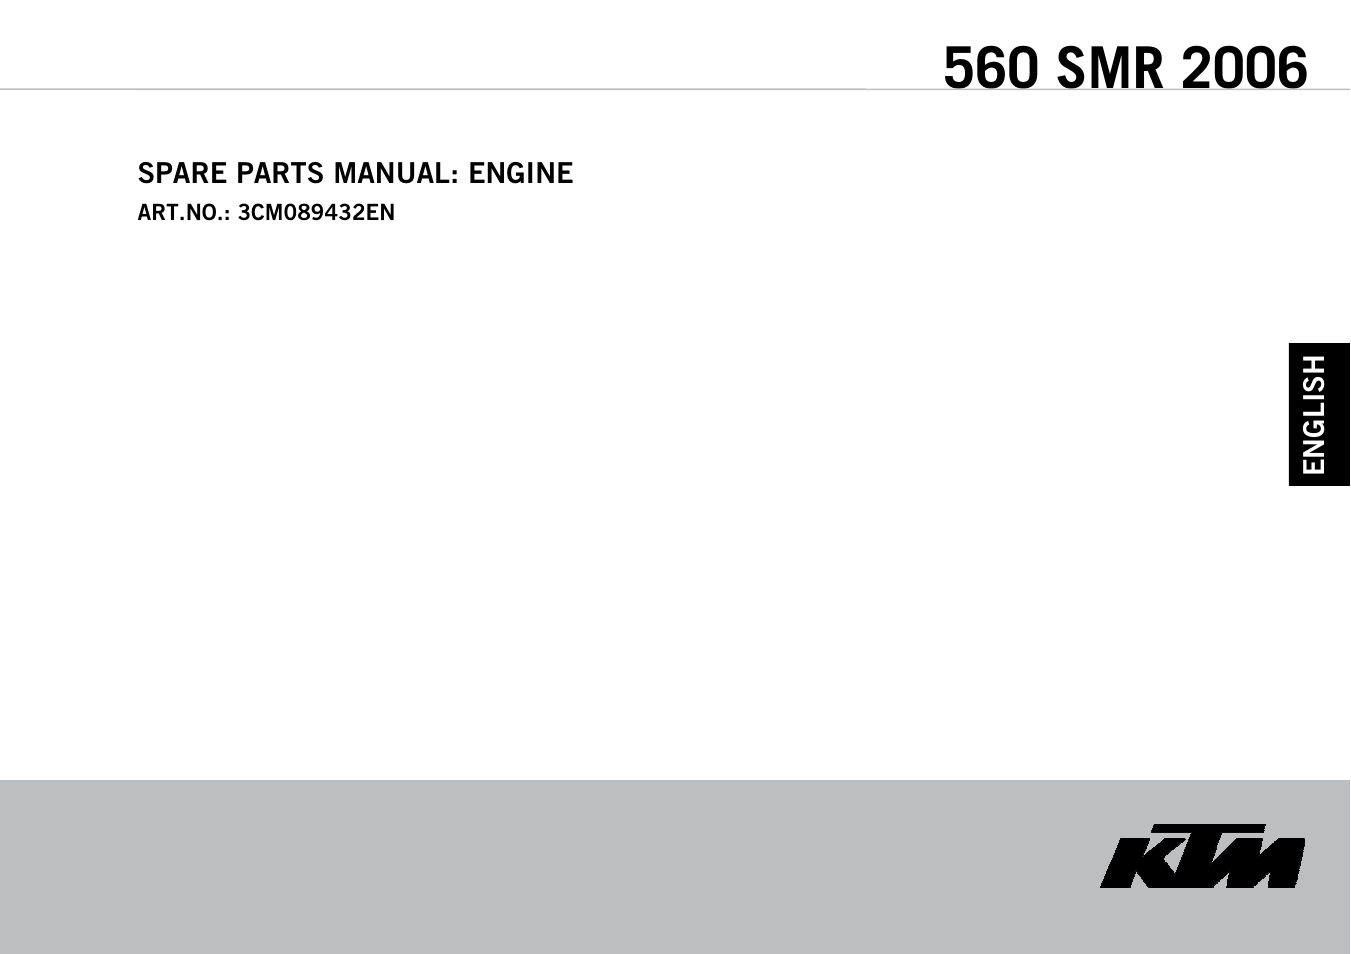 2010 mazda 6 workshop manual